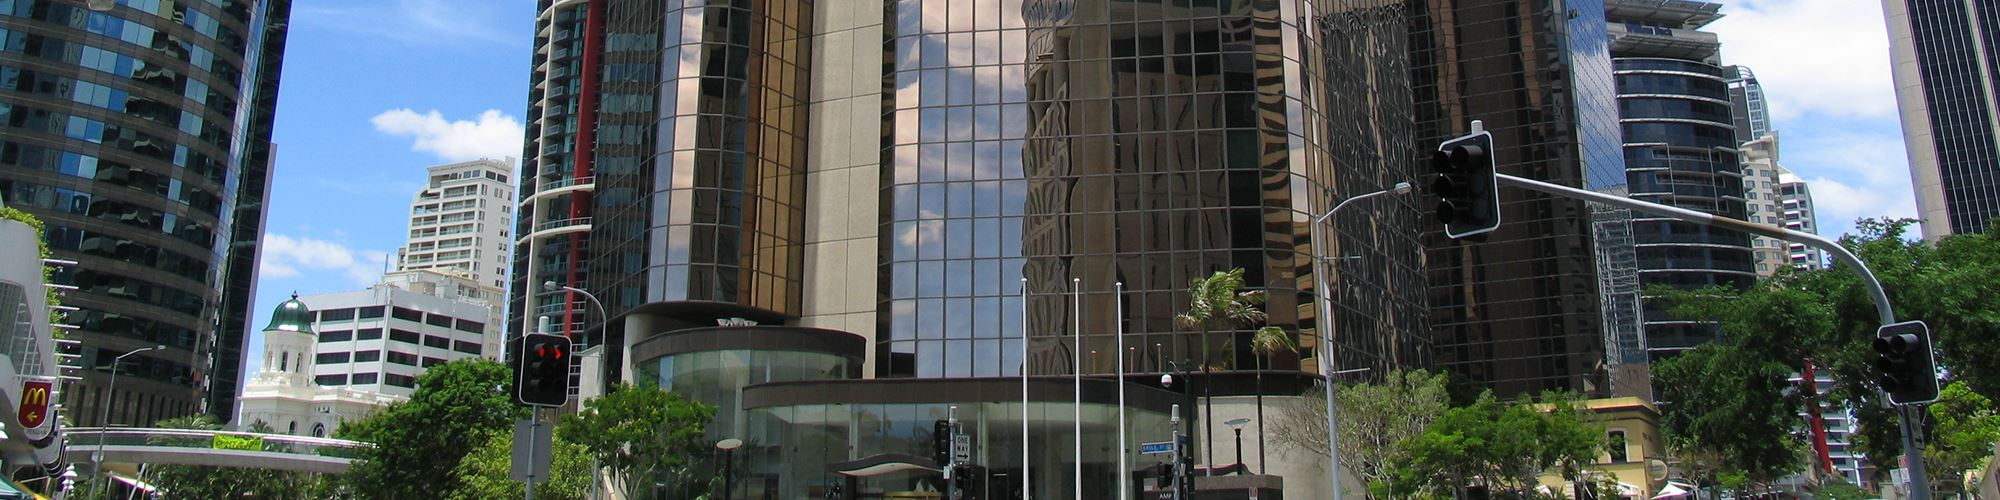 banner-10-eagle-street-brisbane-building-entrance-1.jpg